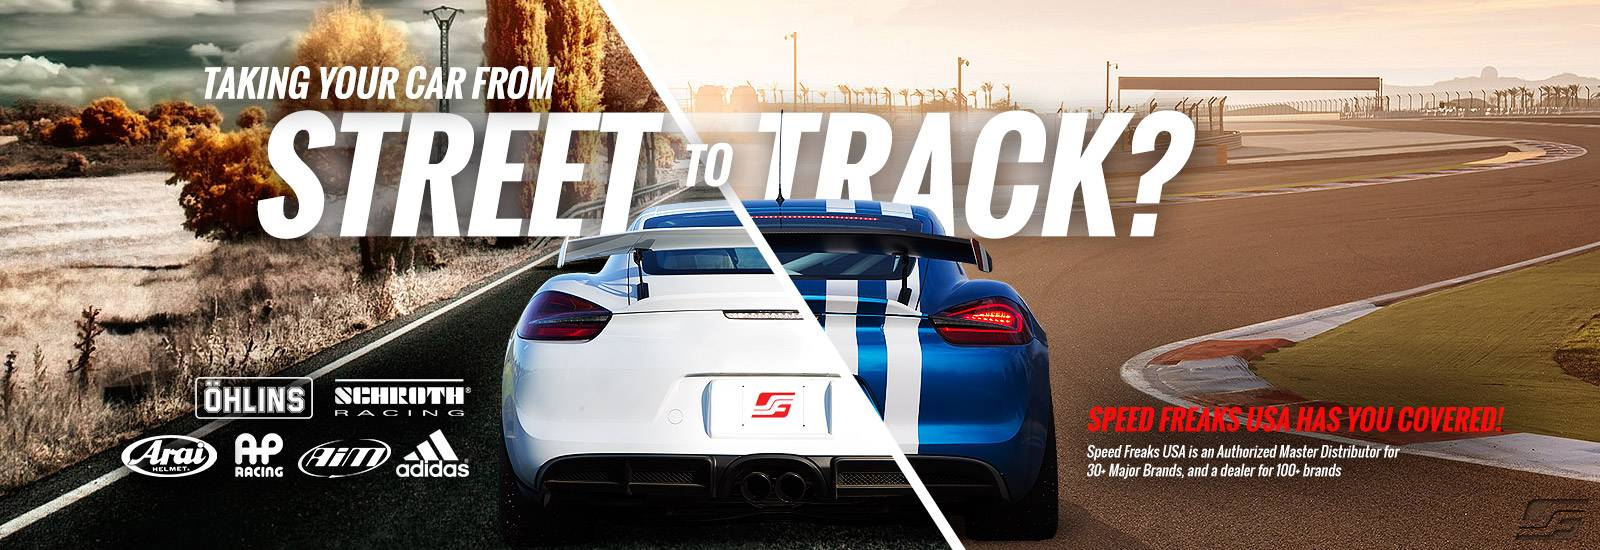 Street To Track?